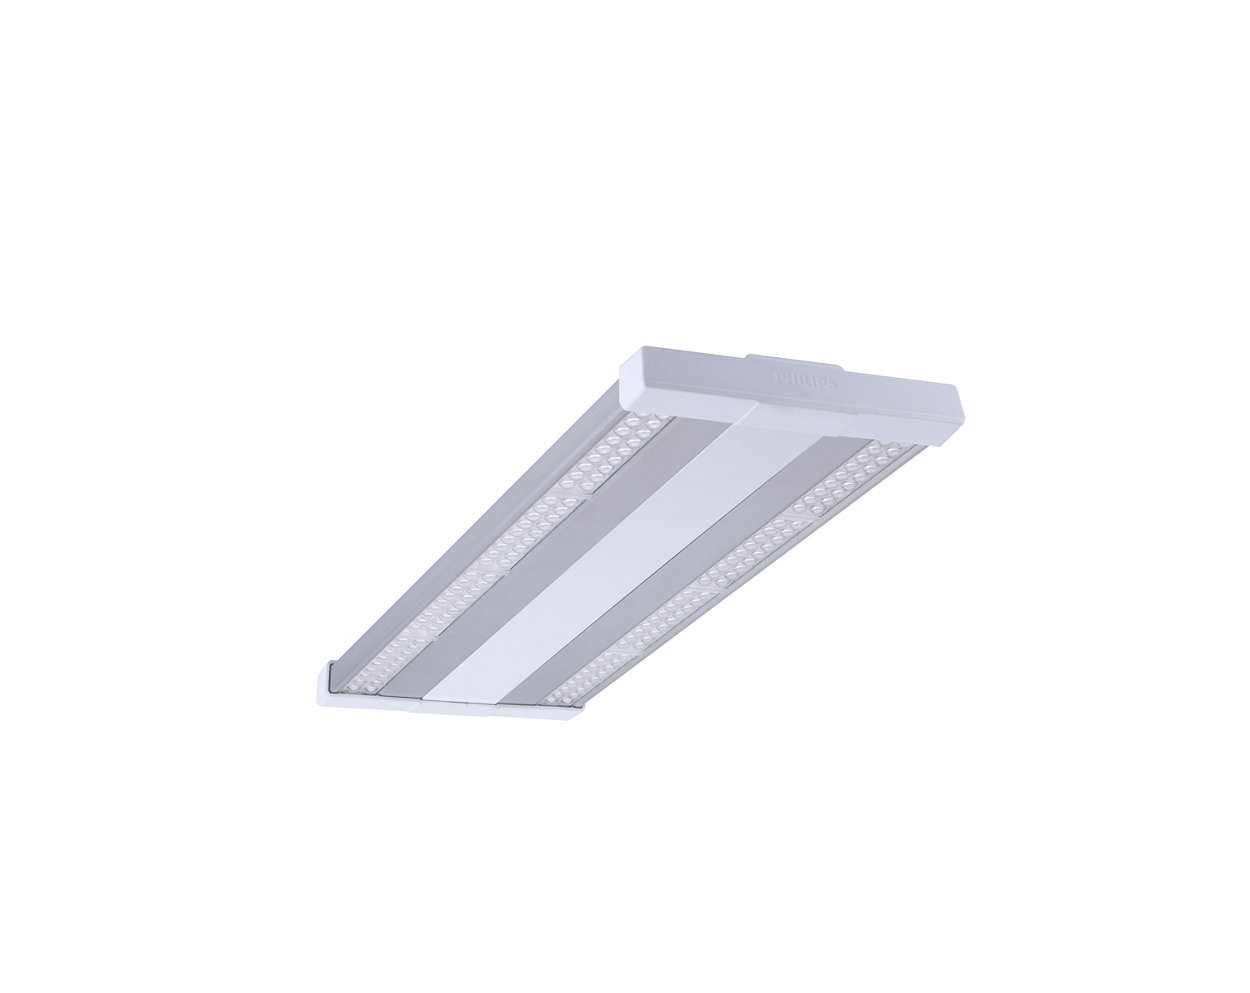 Innovation meets Simplicity: Intelligent lighting revolutionises HighBay illumination